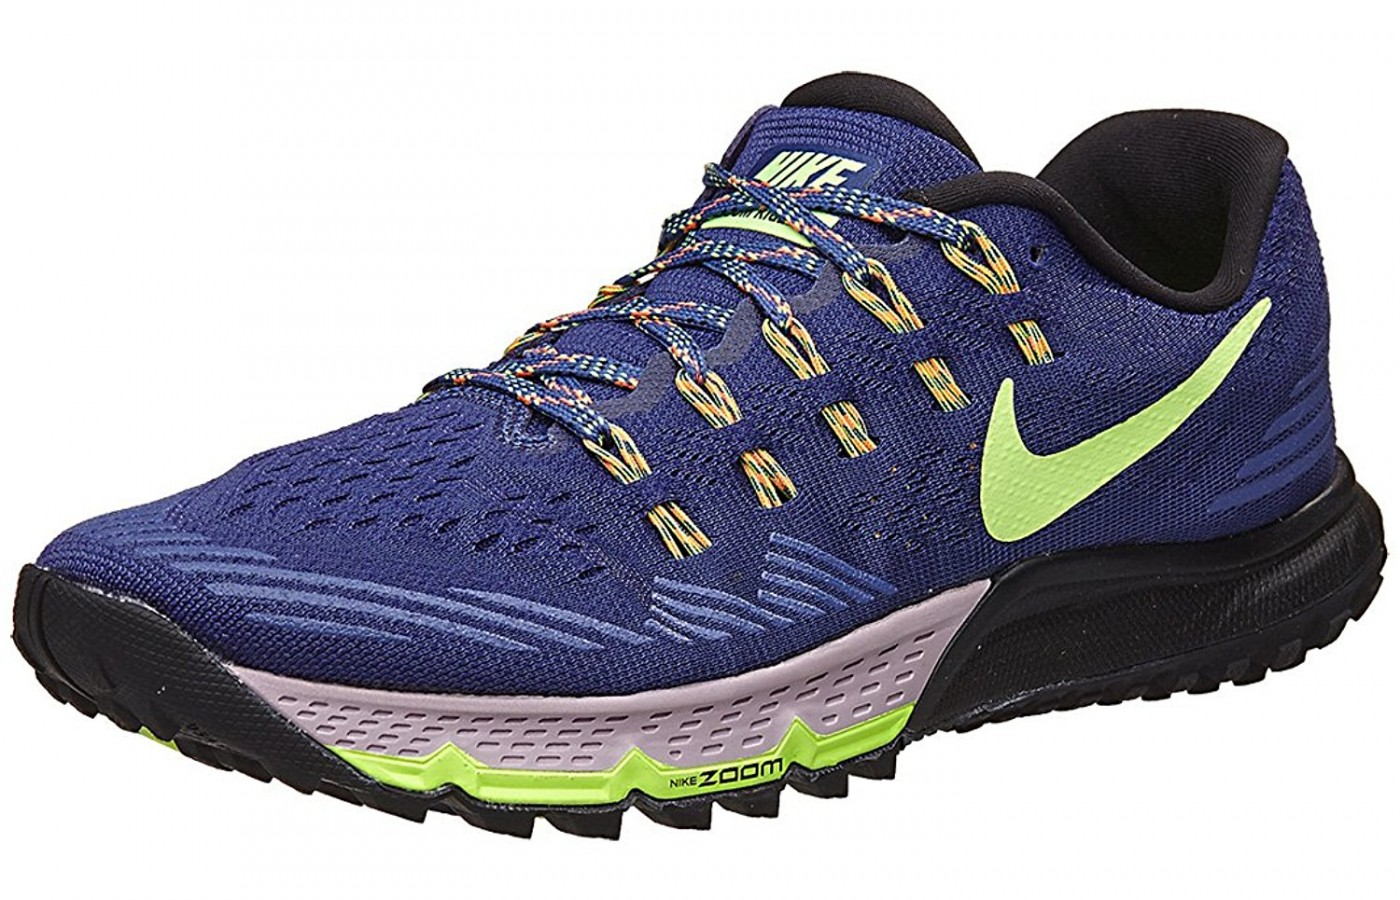 A three quarter view of the Nike Air Zoom Terra Kiger 3 Running Shoe